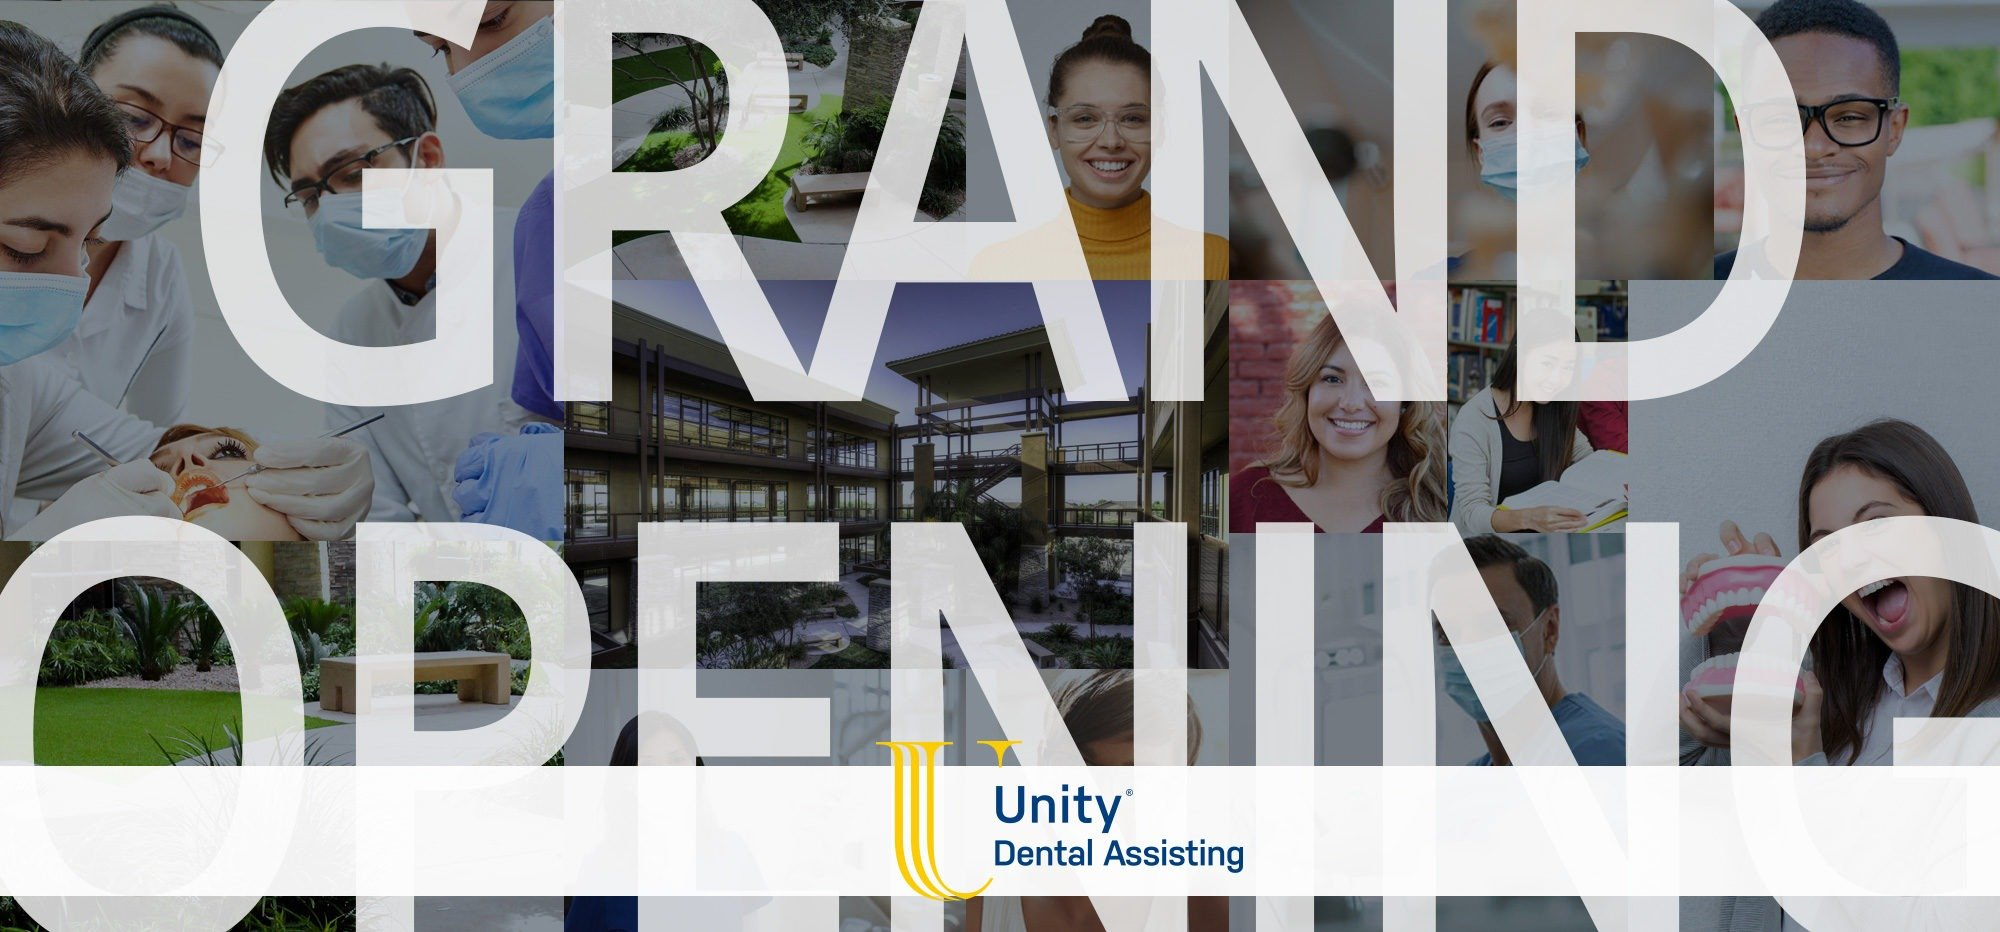 grand opening unity dental assisting